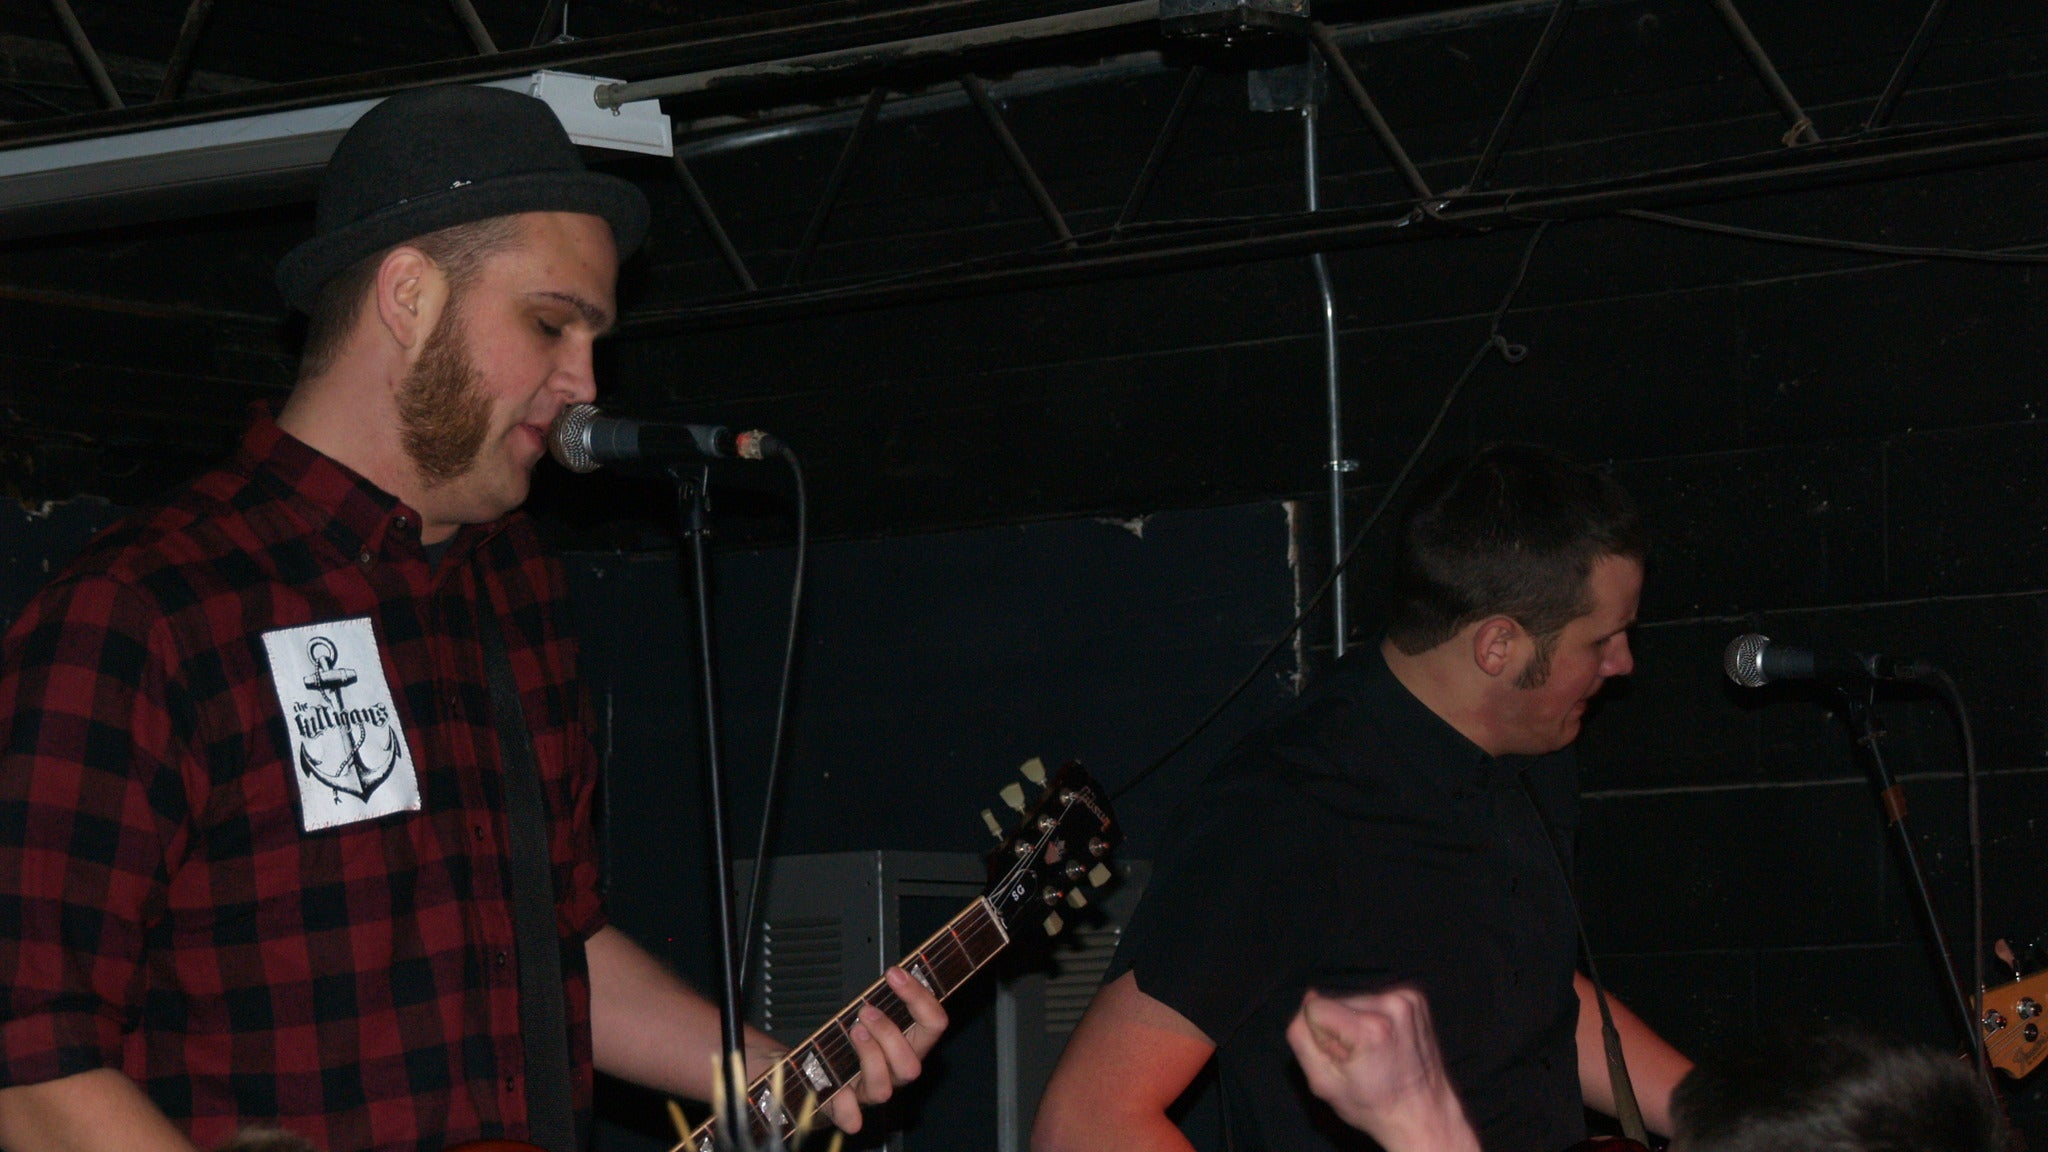 Flatfoot 56 at Middle East